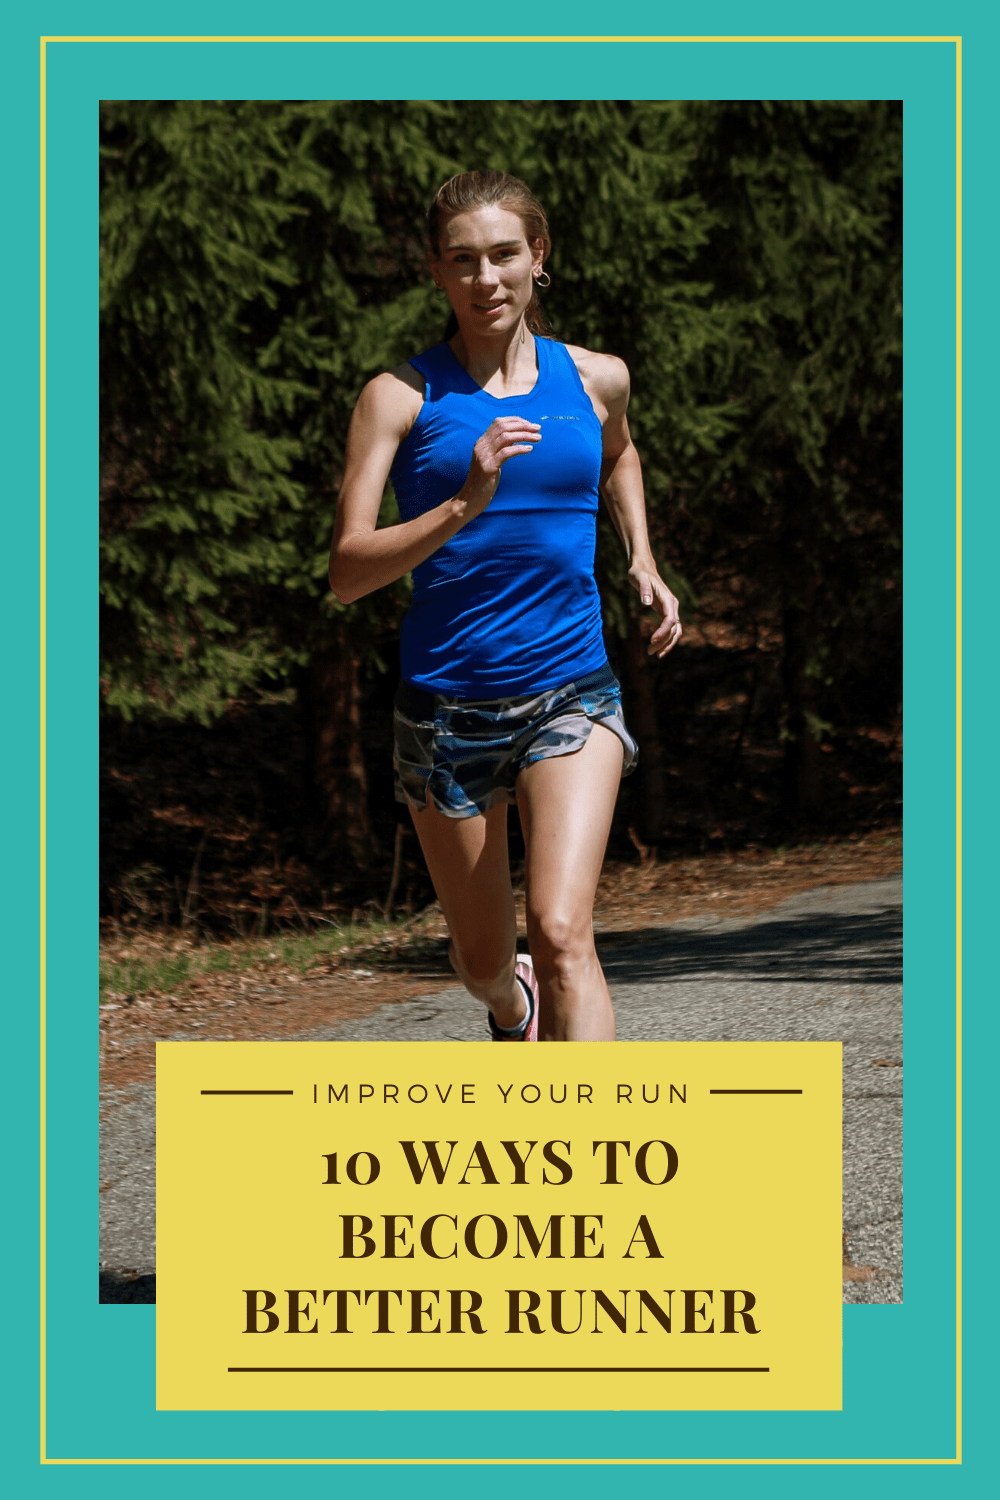 10 ways to become a better runner pin